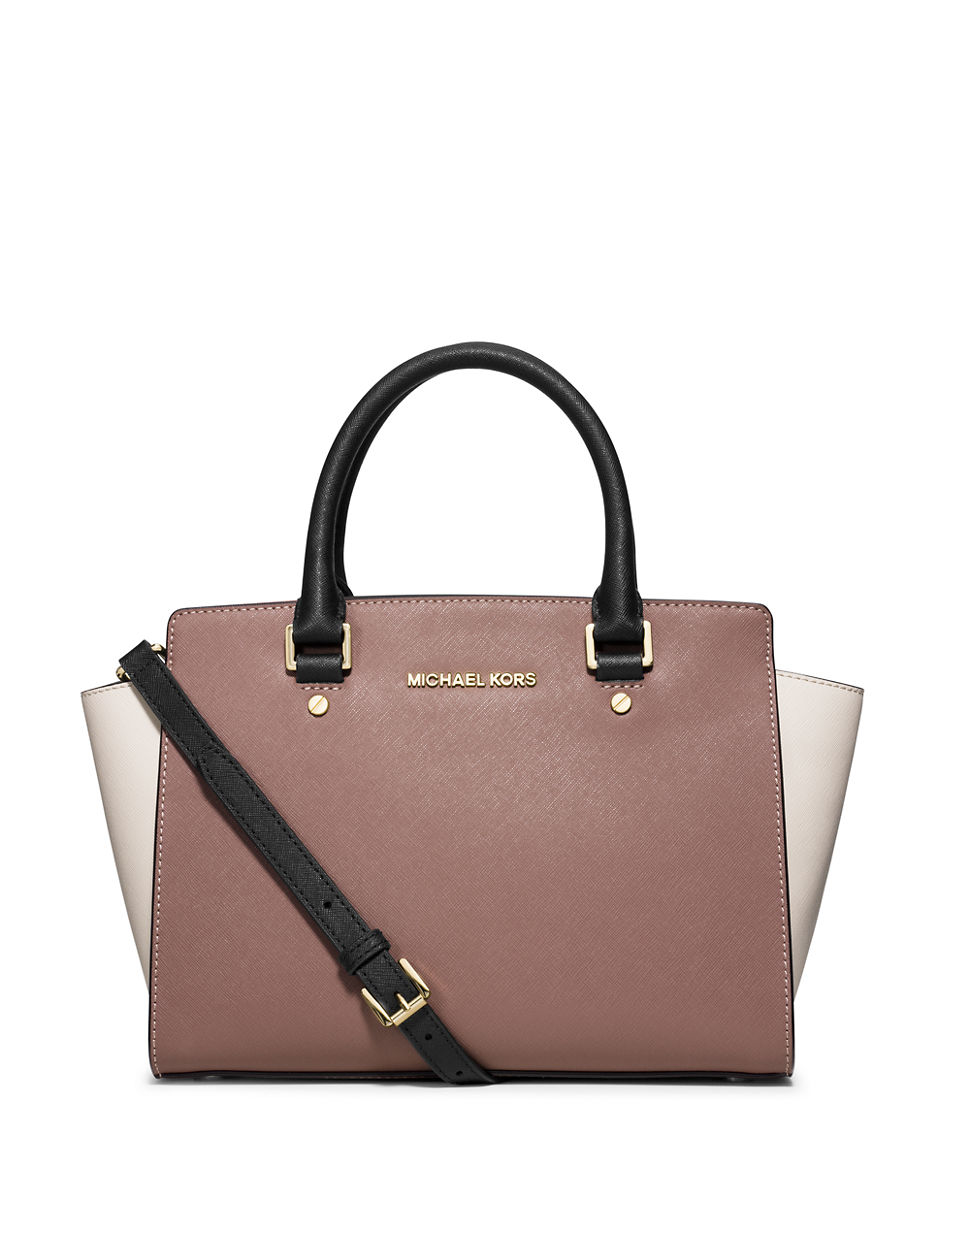 michael michael kors medium bi color saffiano leather satchel in pink. Black Bedroom Furniture Sets. Home Design Ideas